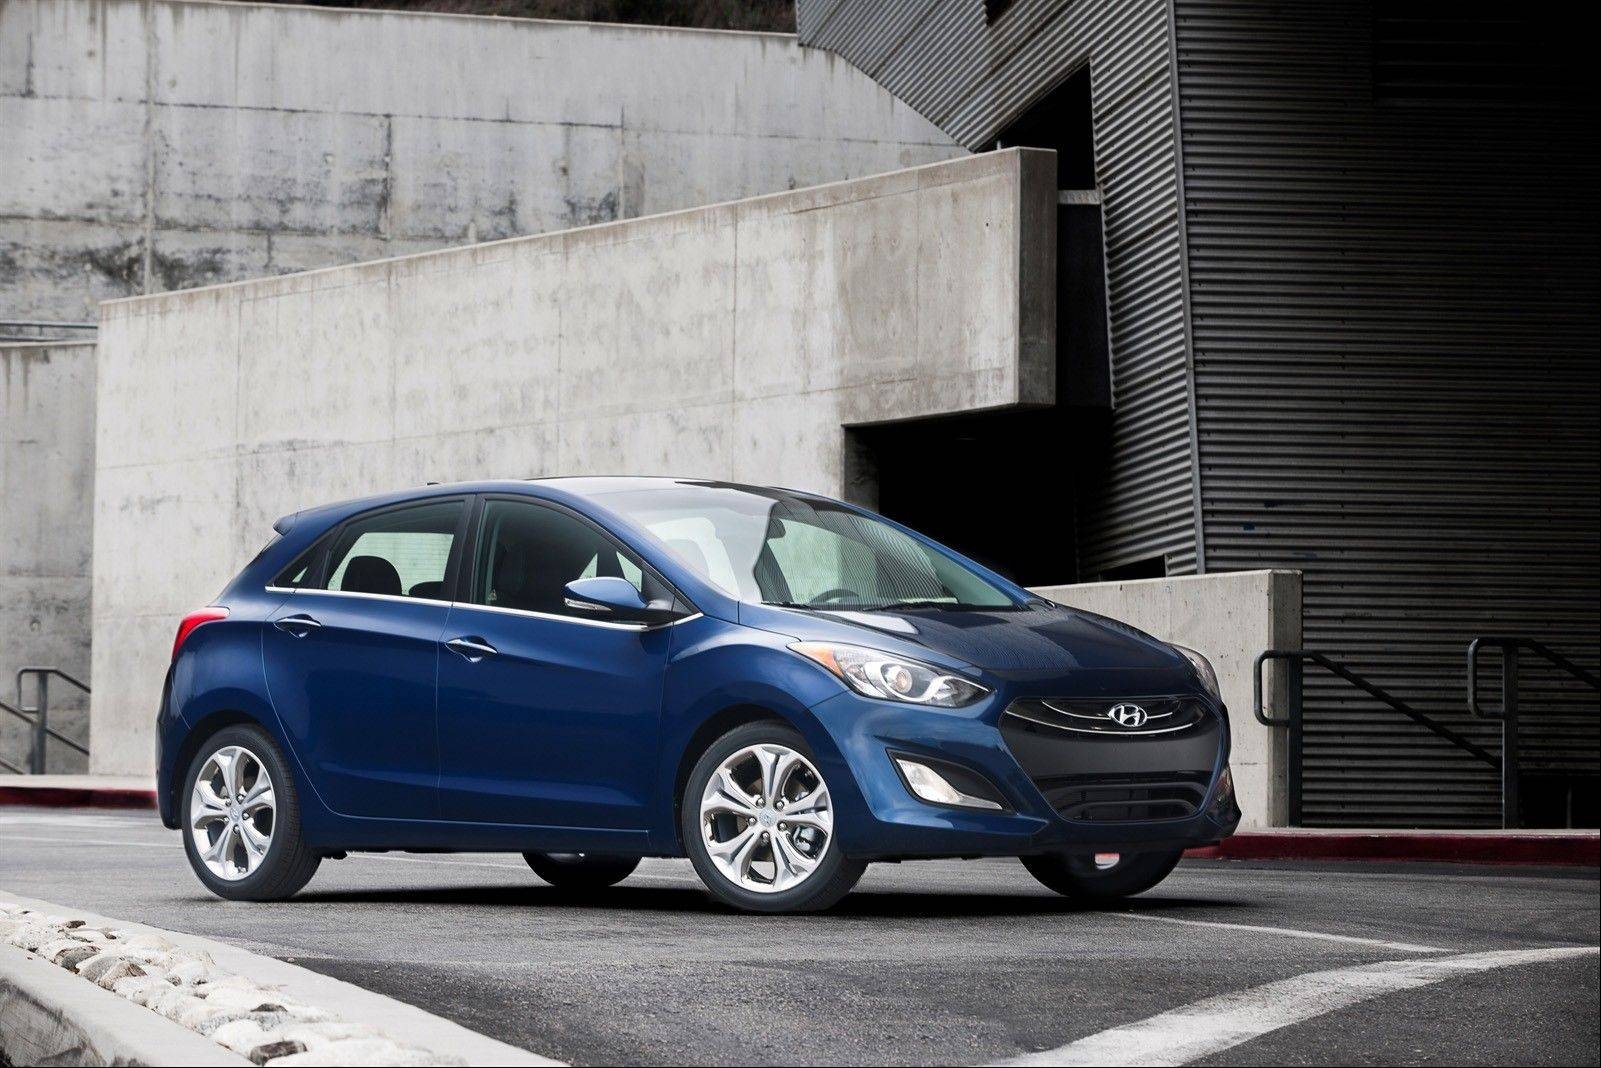 2013 Hyundai Elantra GT. Hyundai and Kia overstated the gas mileage on most of their models from the past three years in an embarrassing blunder that could bring sanctions from the U.S. government and millions of dollars in payments to car owners.